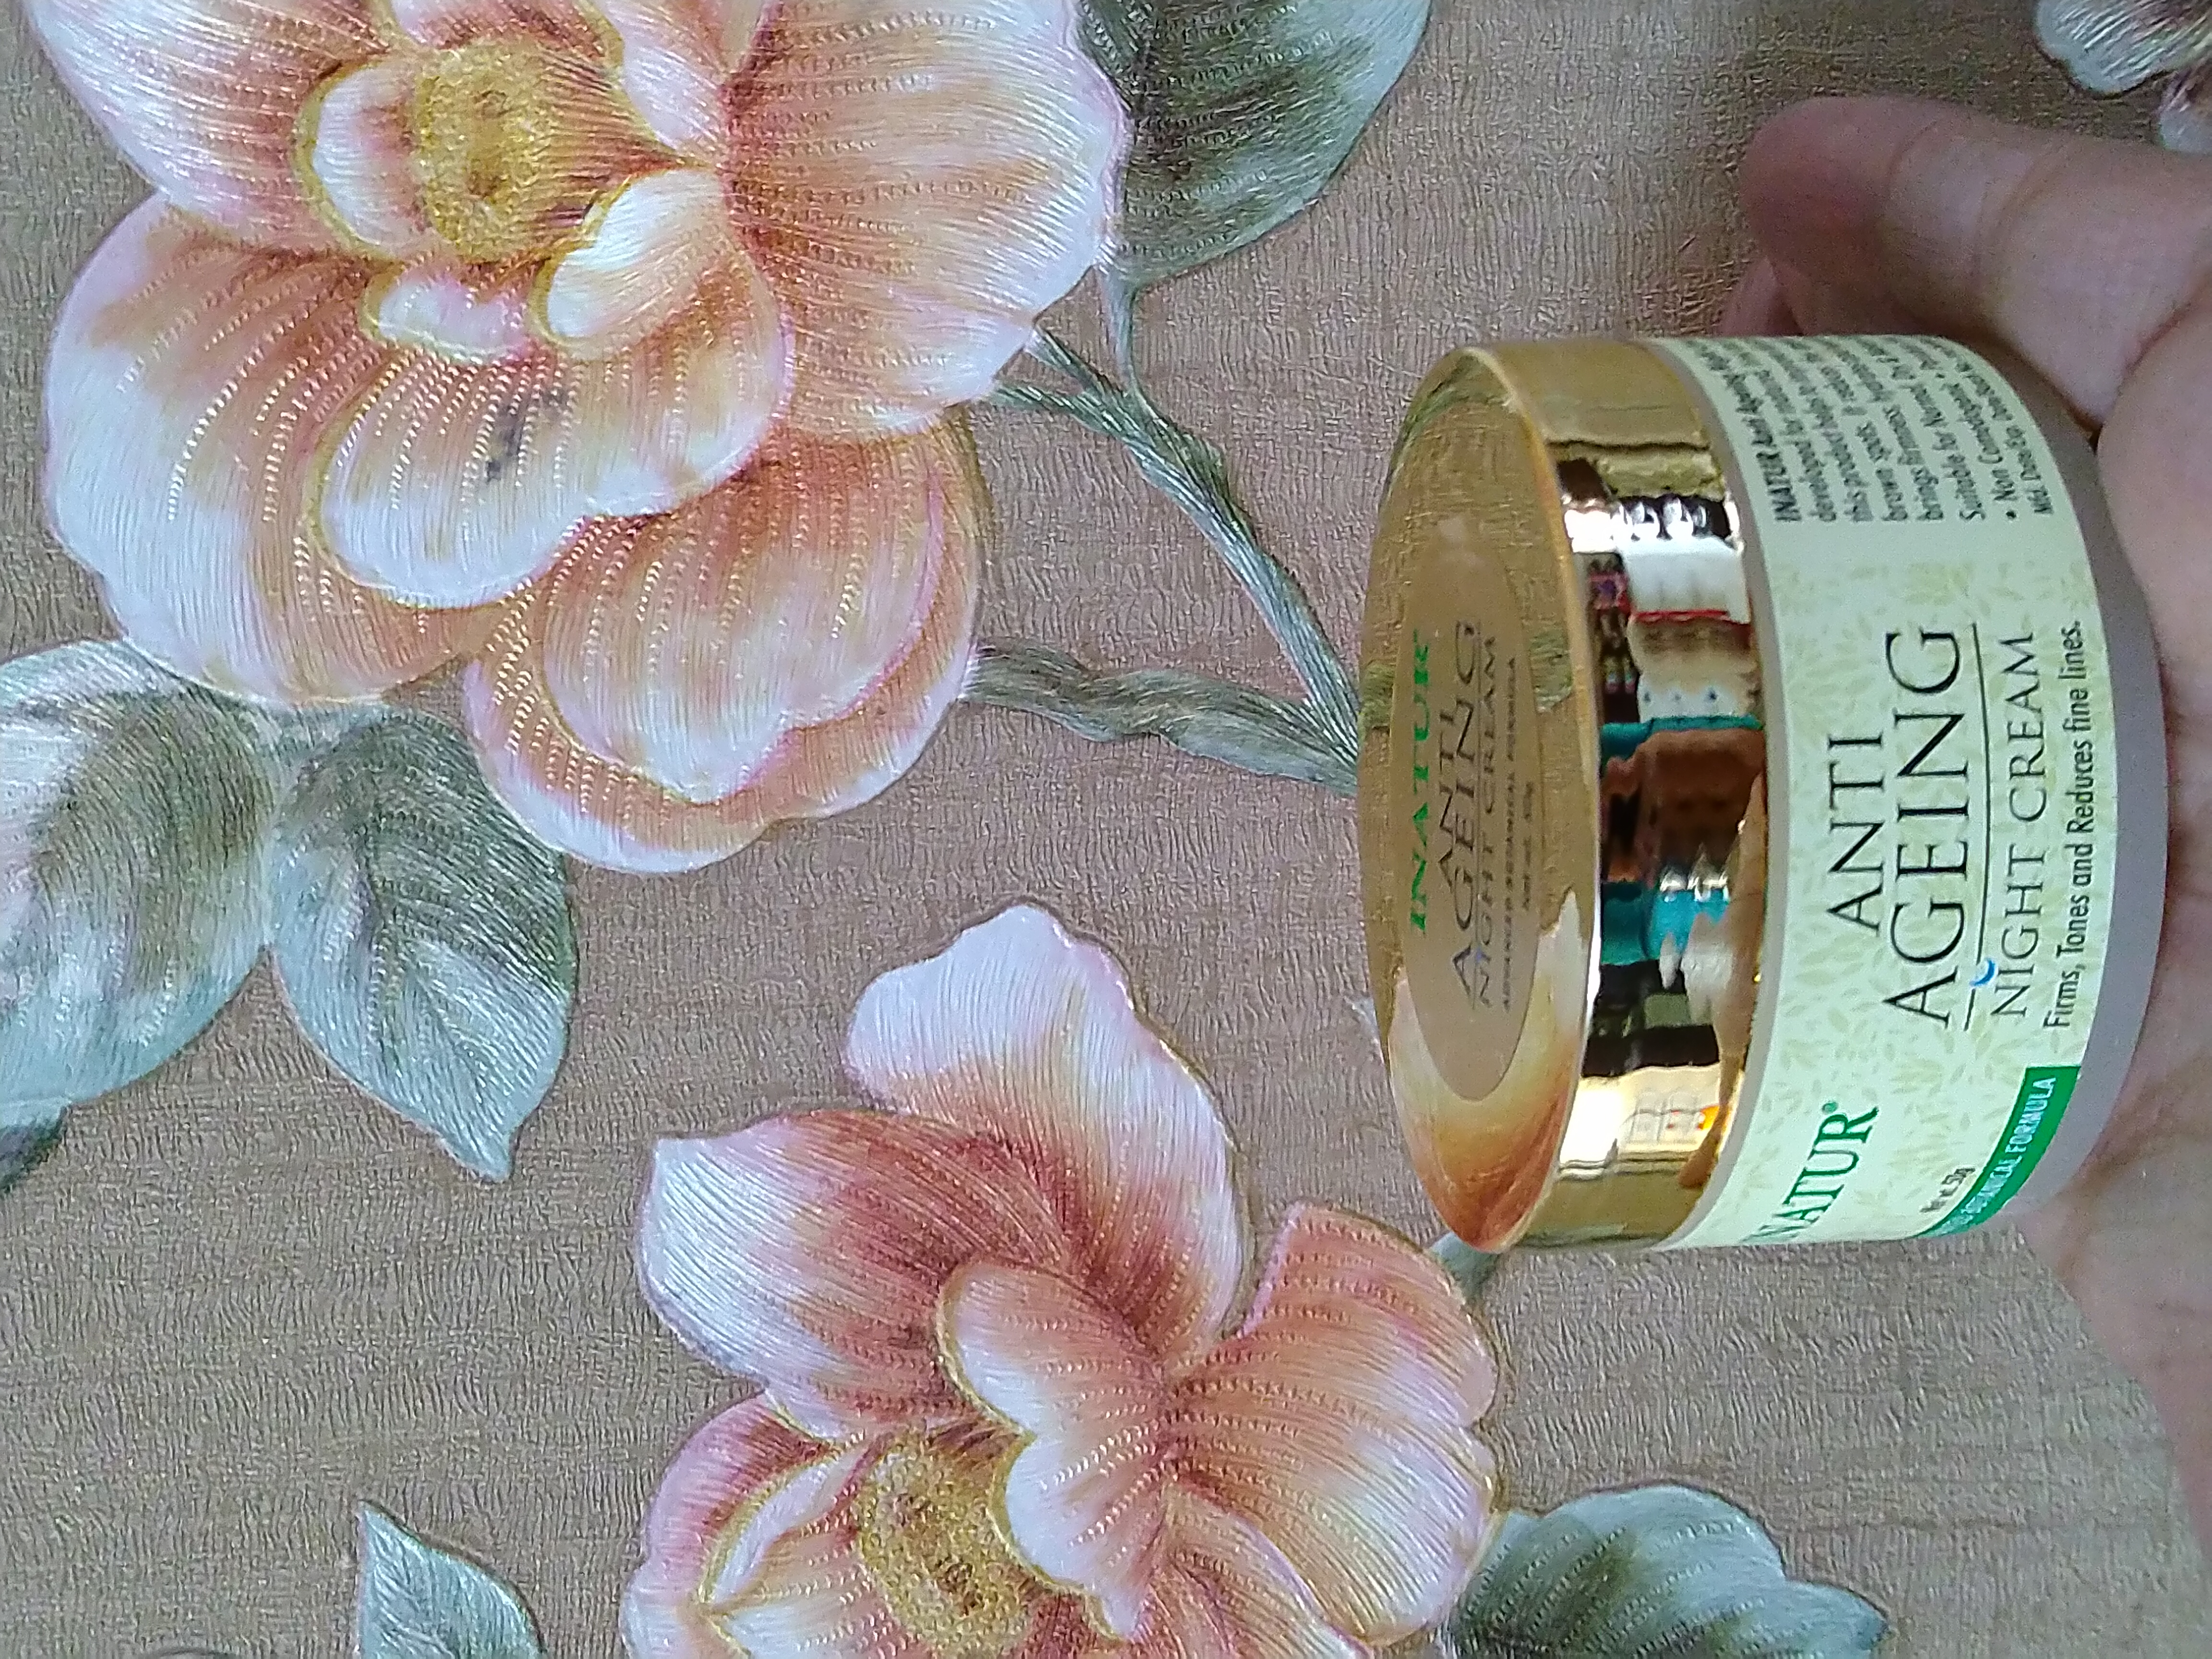 Inatur Anti-Ageing Night Cream -Looks promising-By shubhra